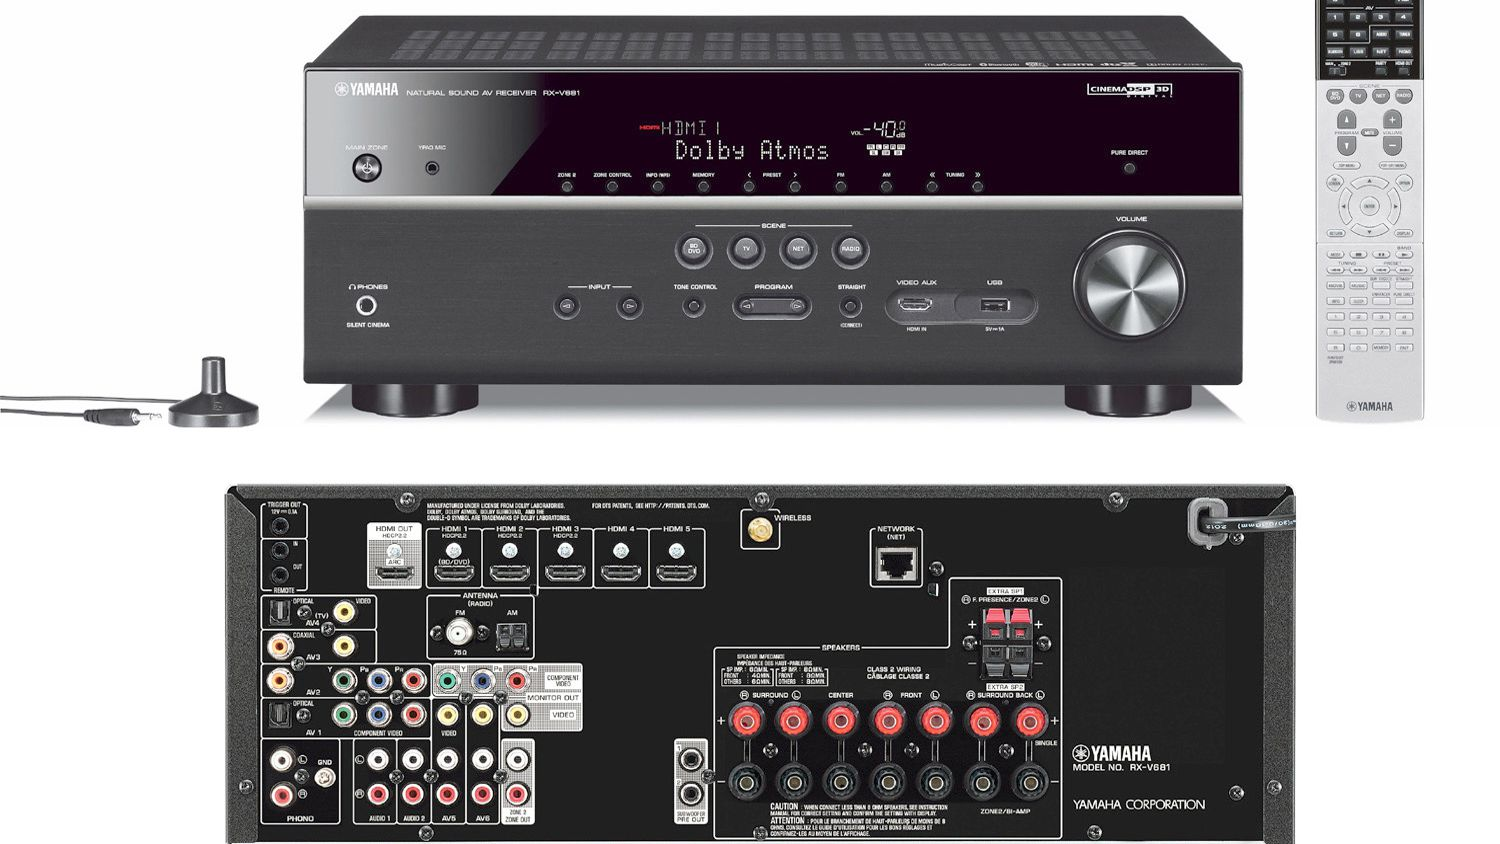 How To Install And Set Up A Home Theater Receiver